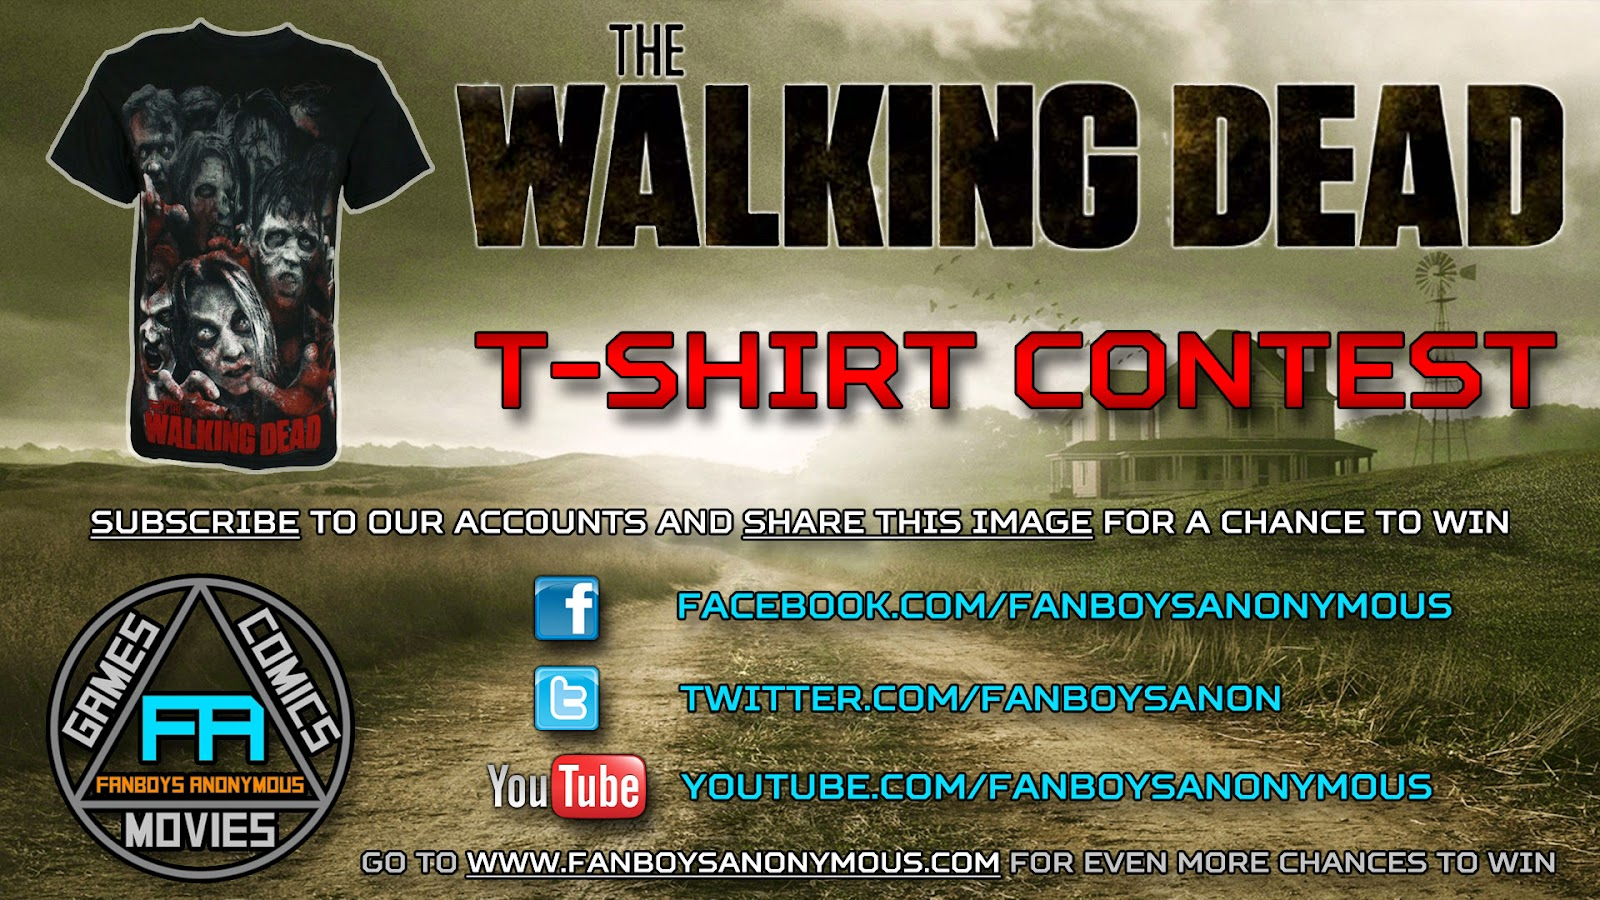 win a free Walking Dead t-shirt by subscribing to Fanboys Anonymous